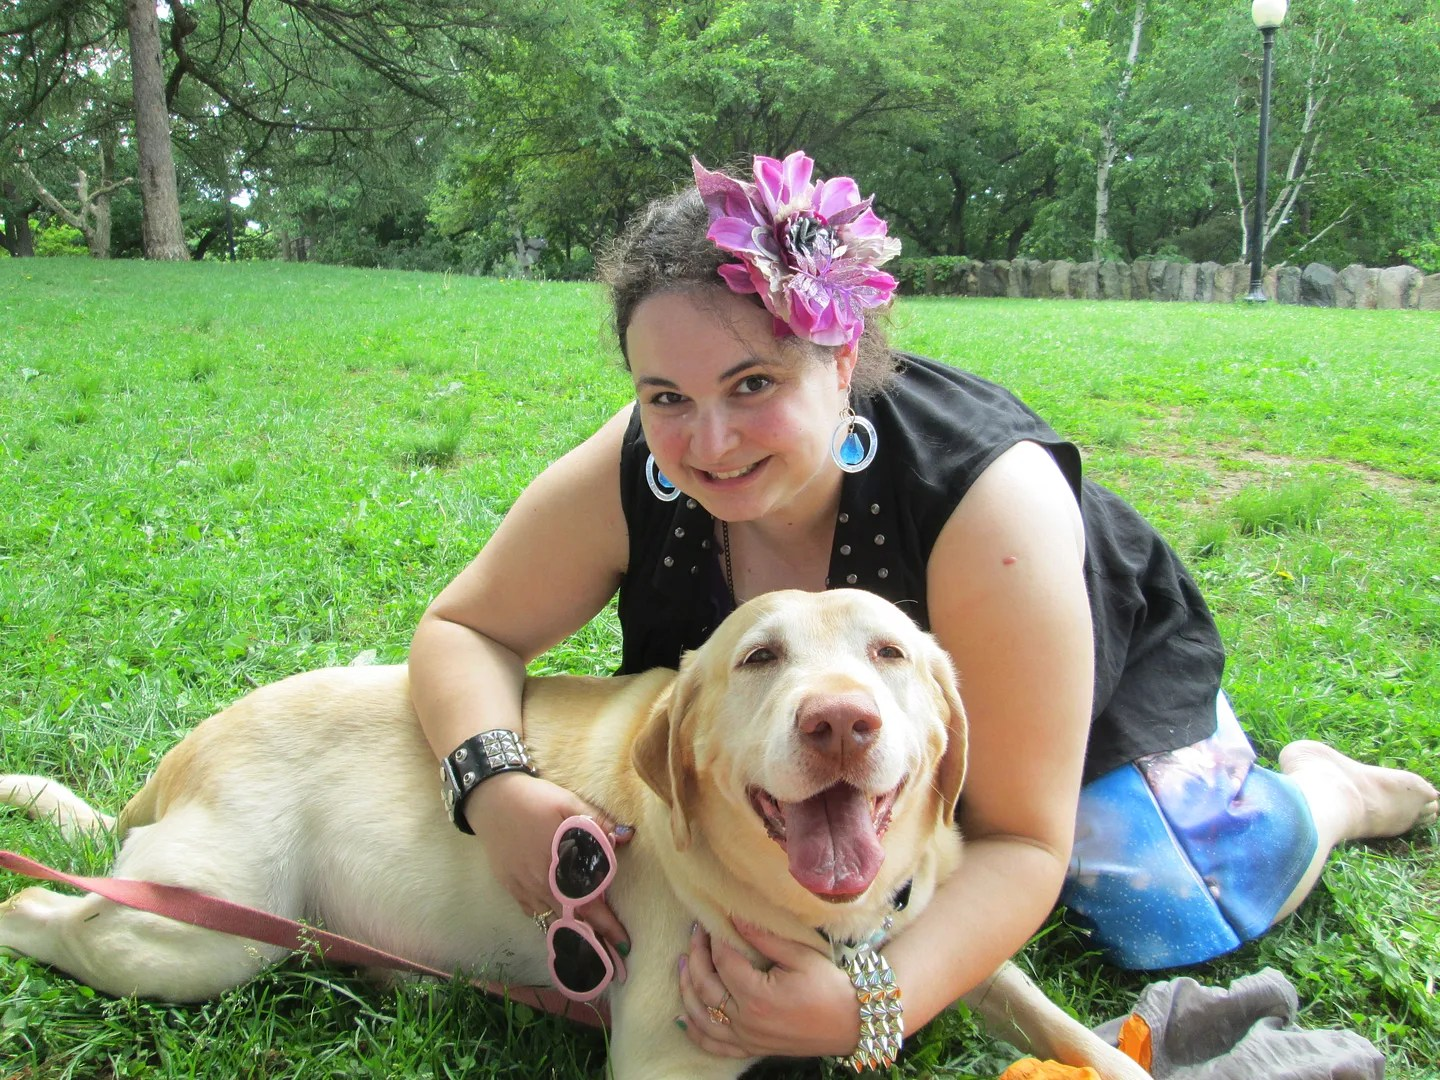 plus size woman cuddling a yellow labrador dog in a park